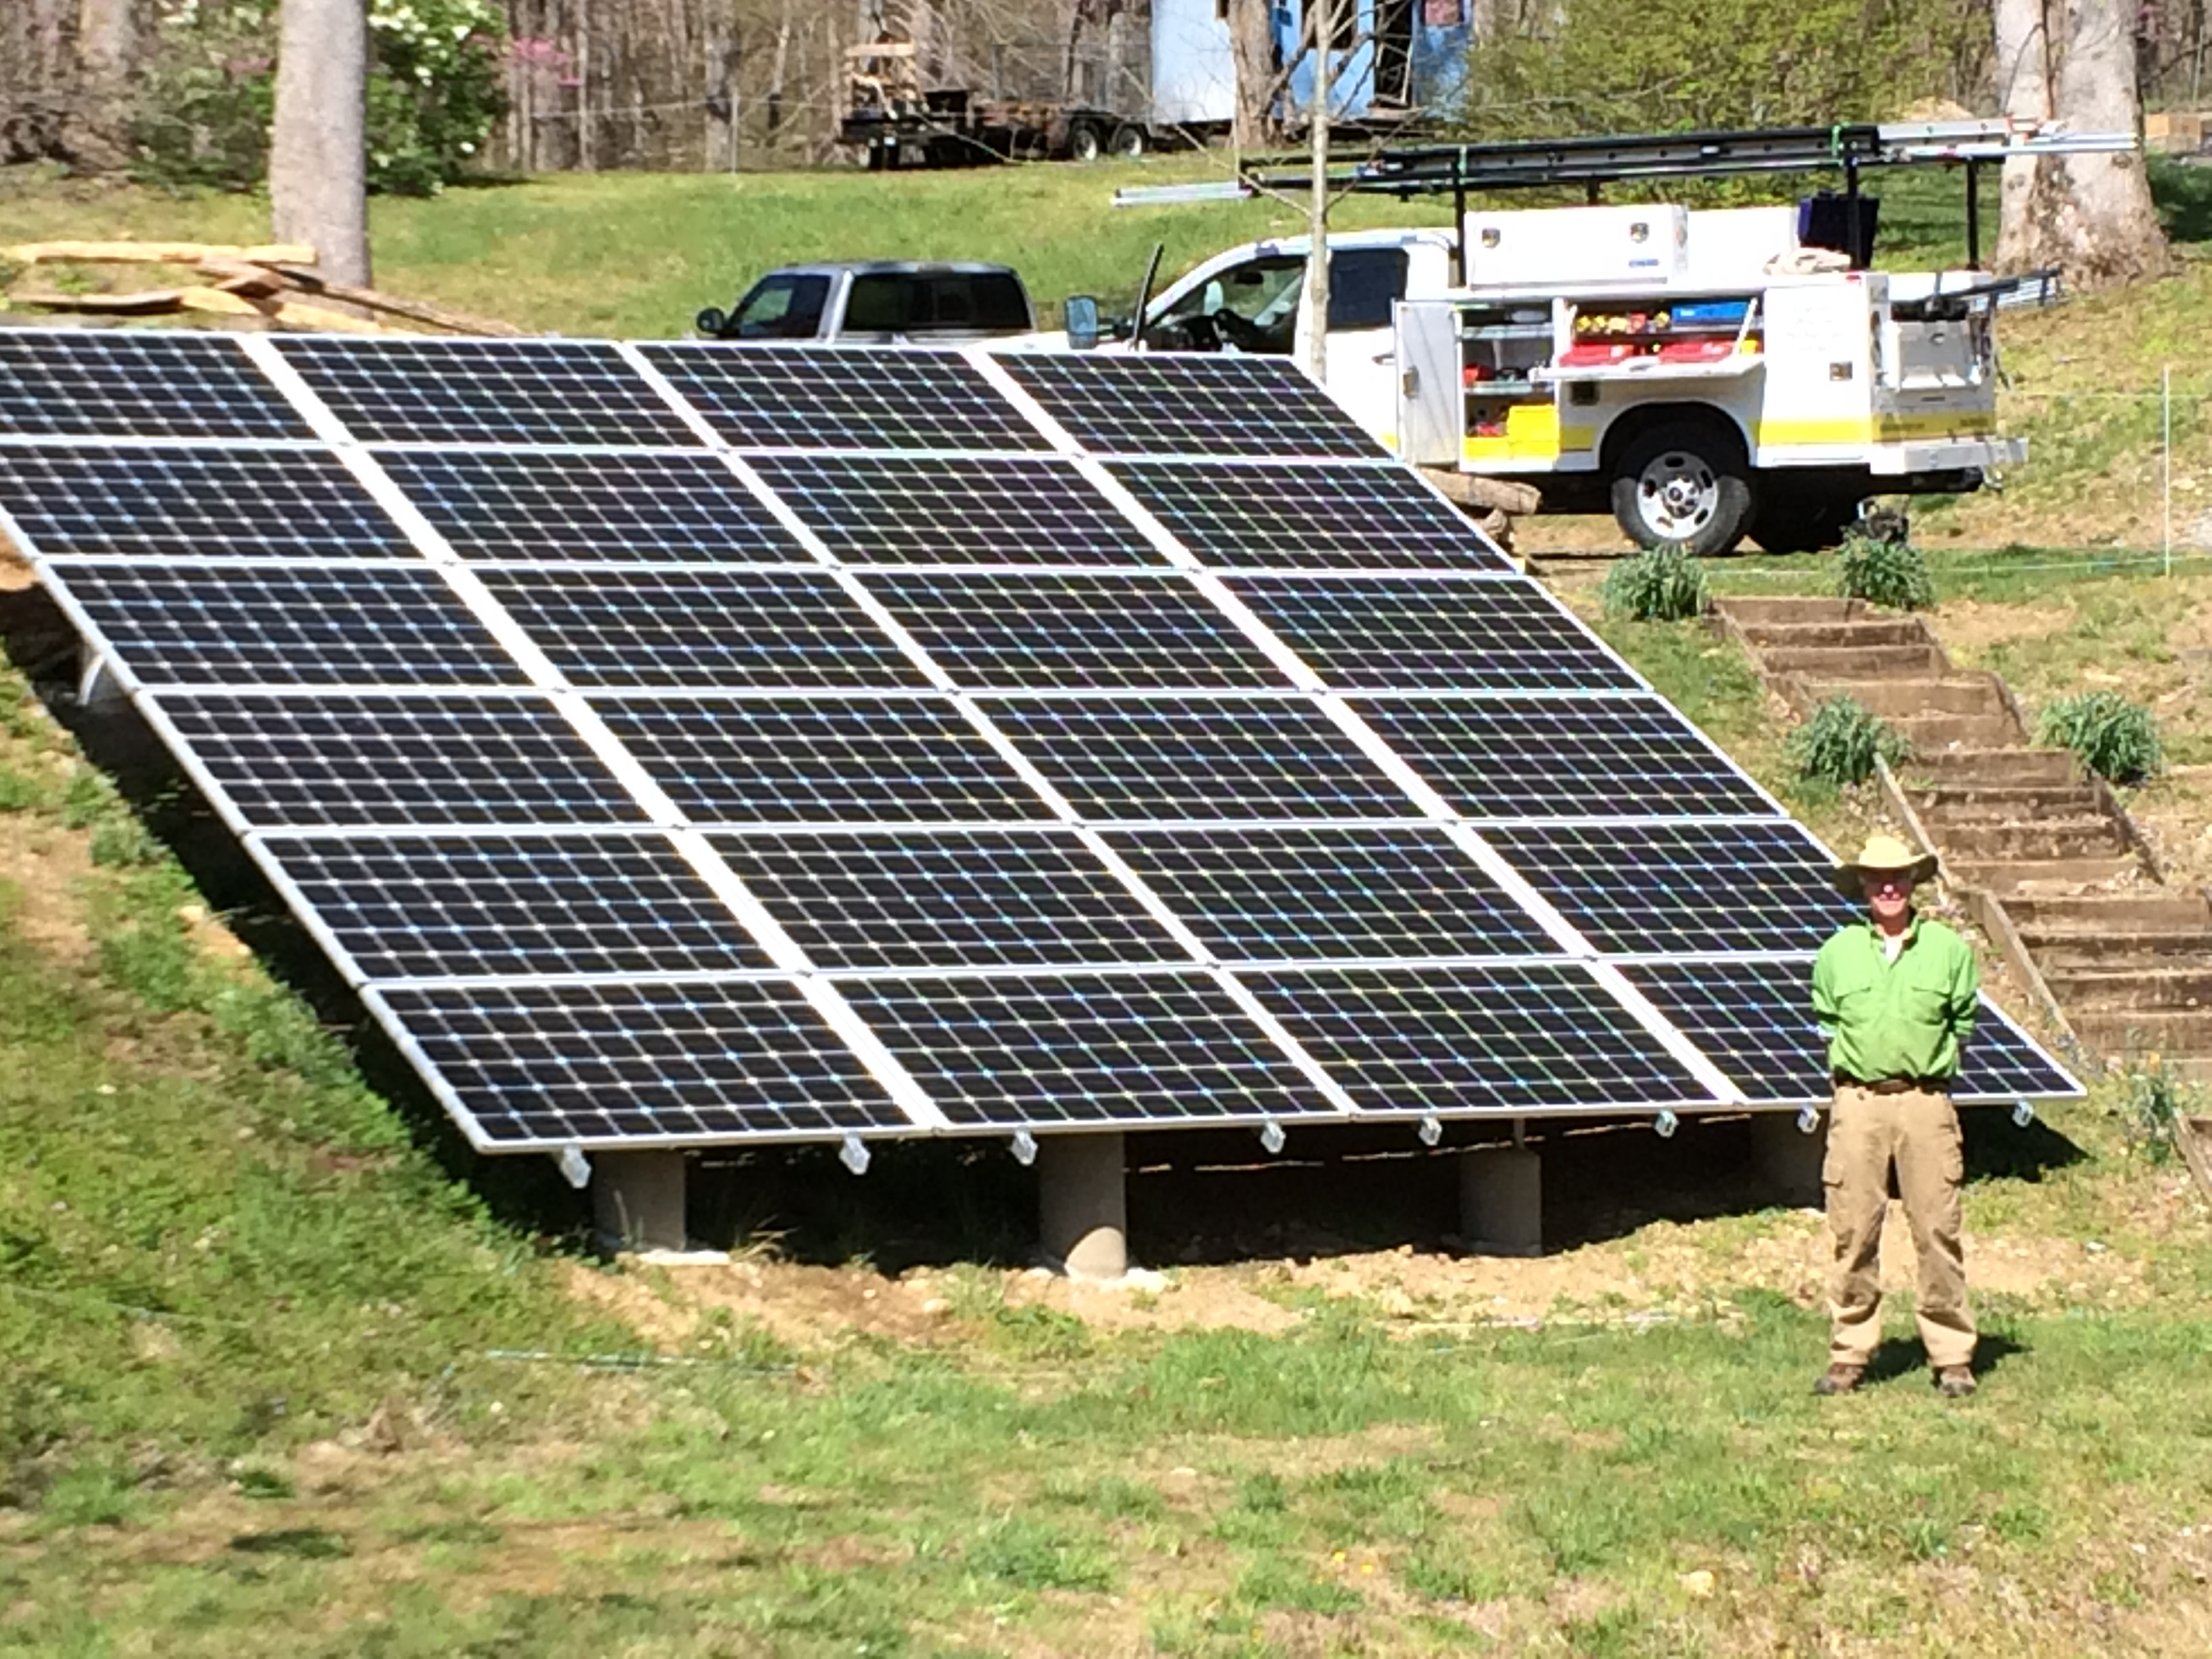 13.68 kW grid-tie system (1 of 2 arrays) in Madison County, Virginia